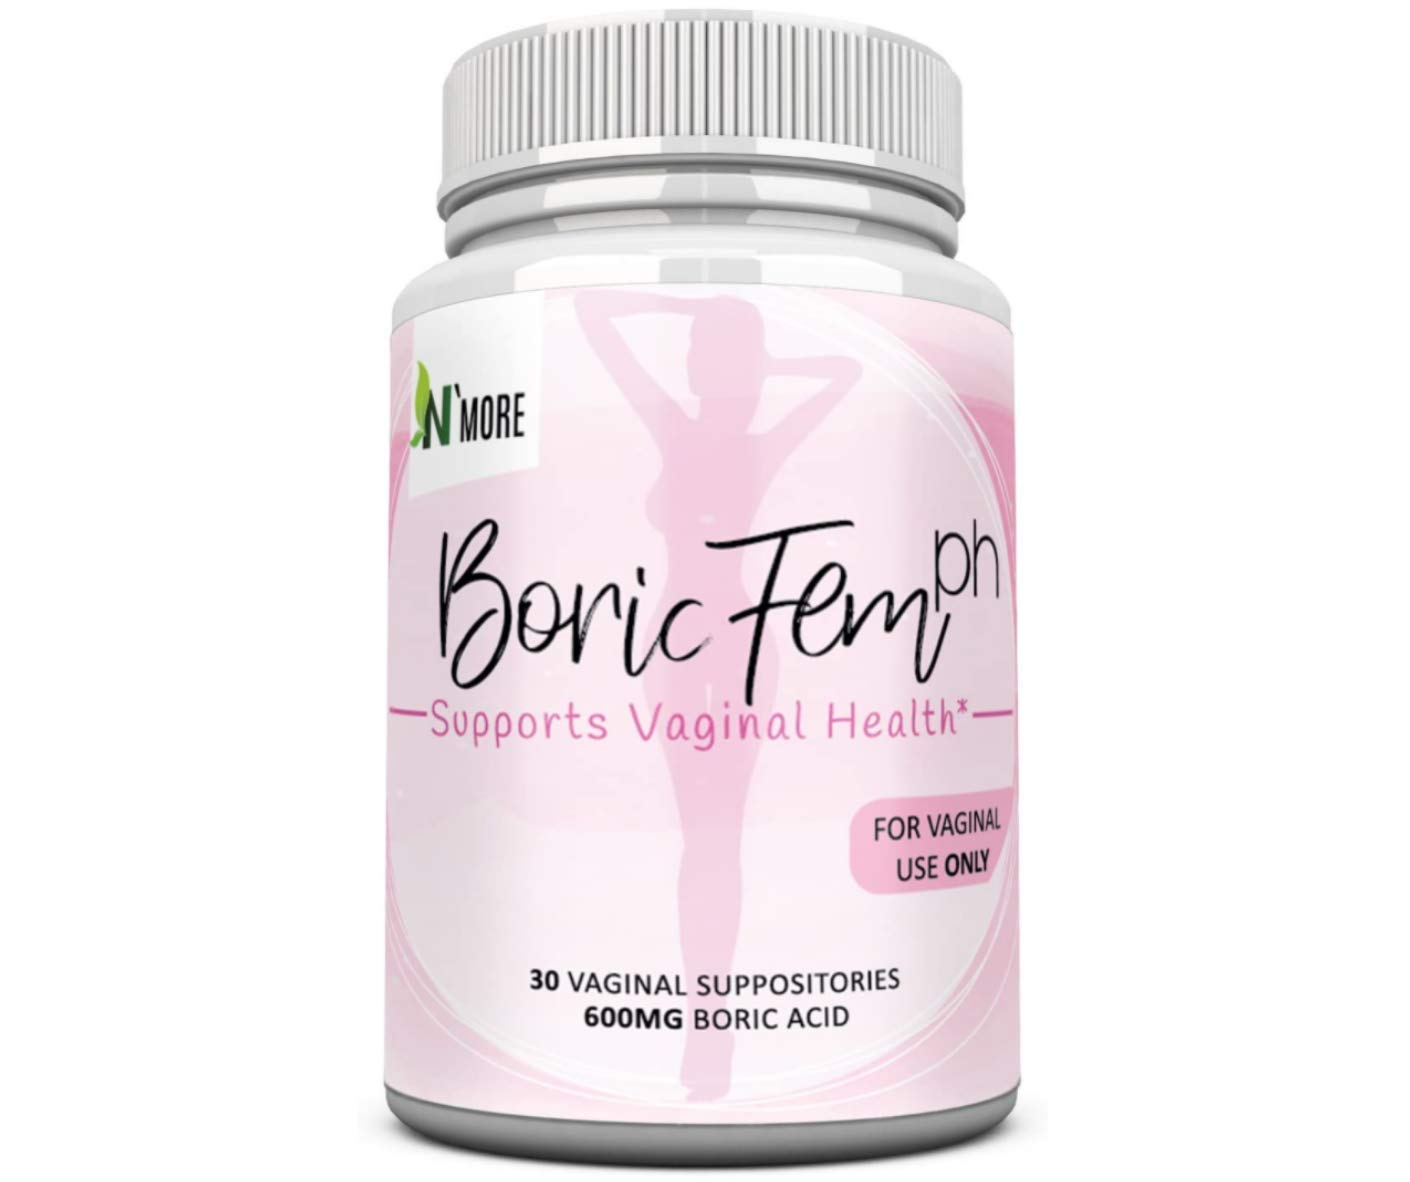 Boric Acid Vaginal Suppositories - 30 Count, 600mg - 100% Pure Made in USA - Boricfem Support Vaginal Health